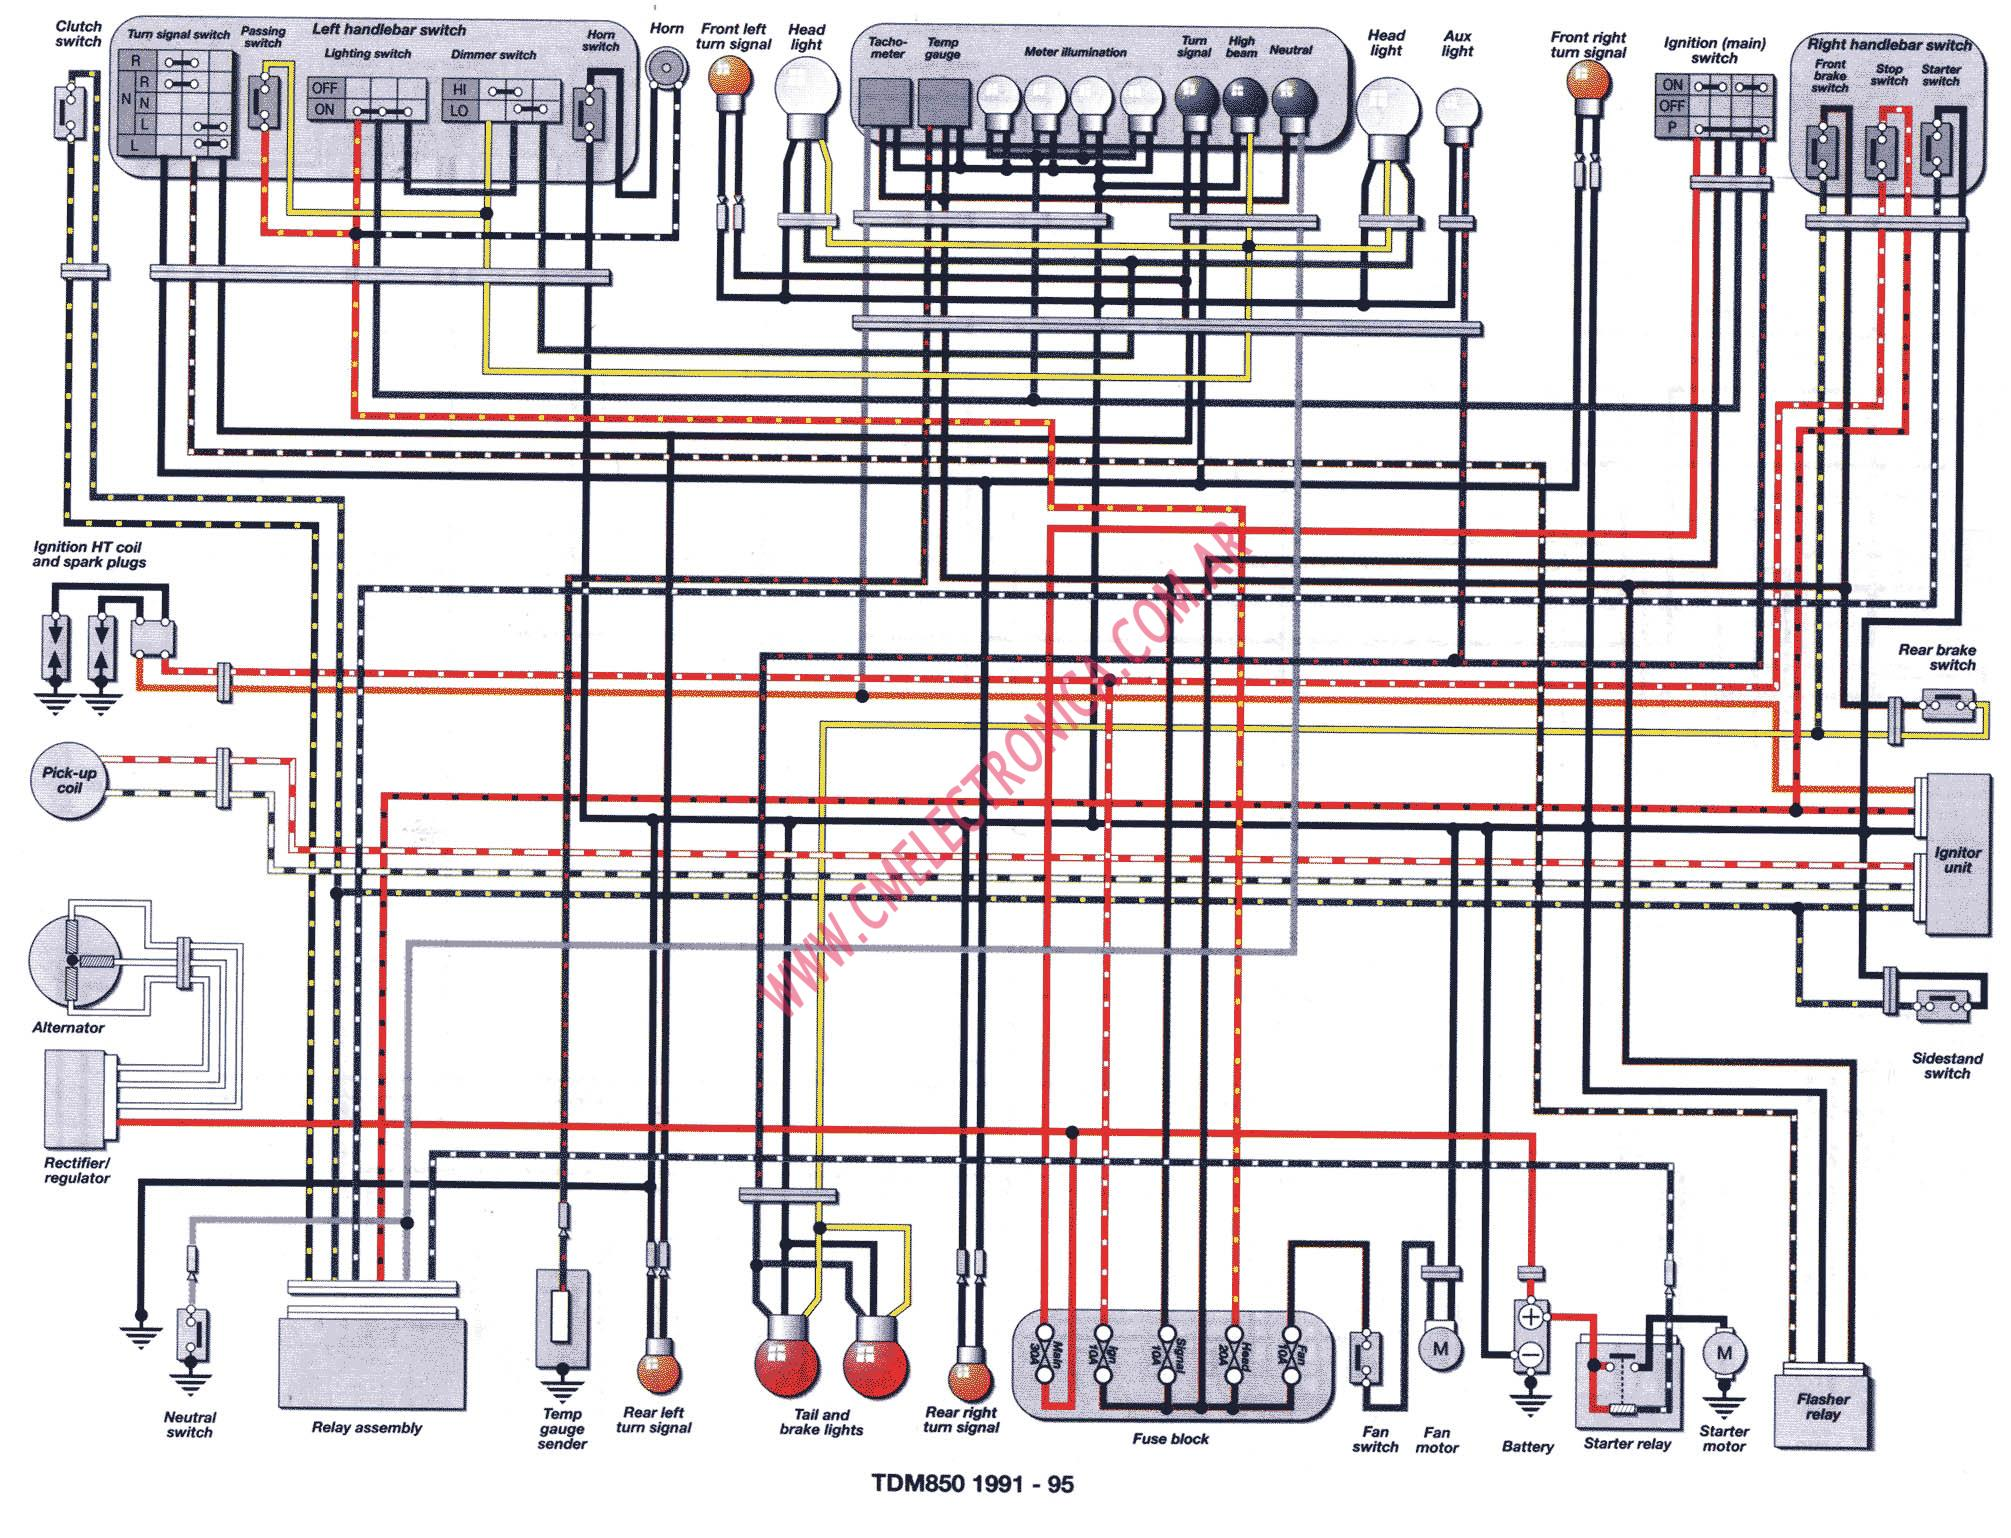 Electronic Ignition Wiring Diagram 95 Chevy Great Design Of 350 Coil Get Distributor Mopar